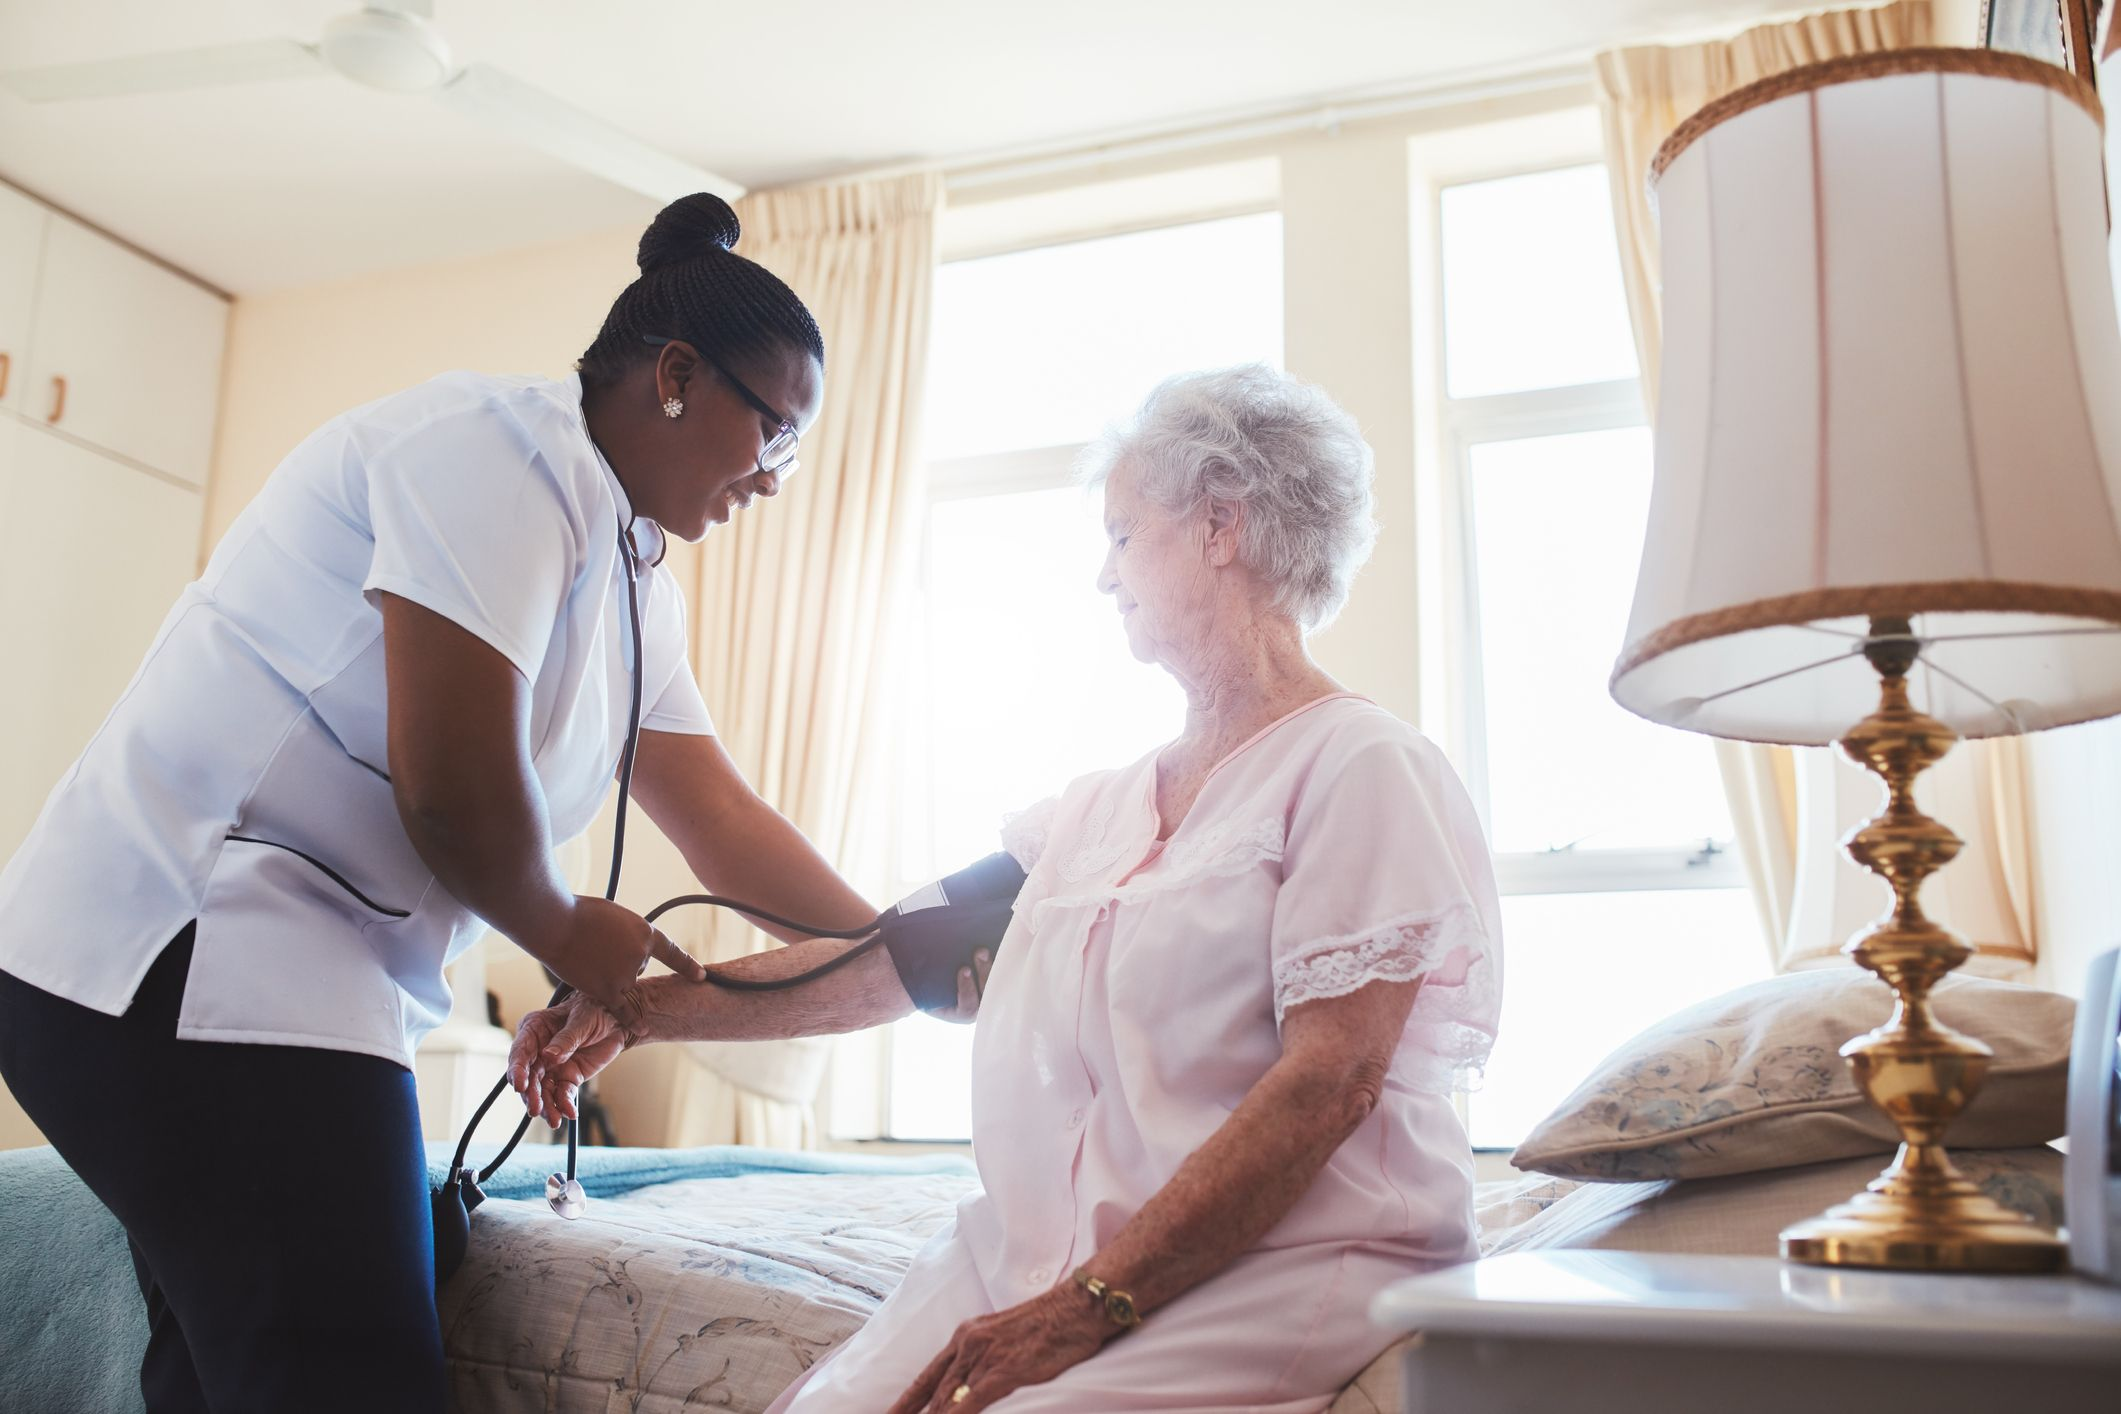 Inhome care services and nursing homes are costly and